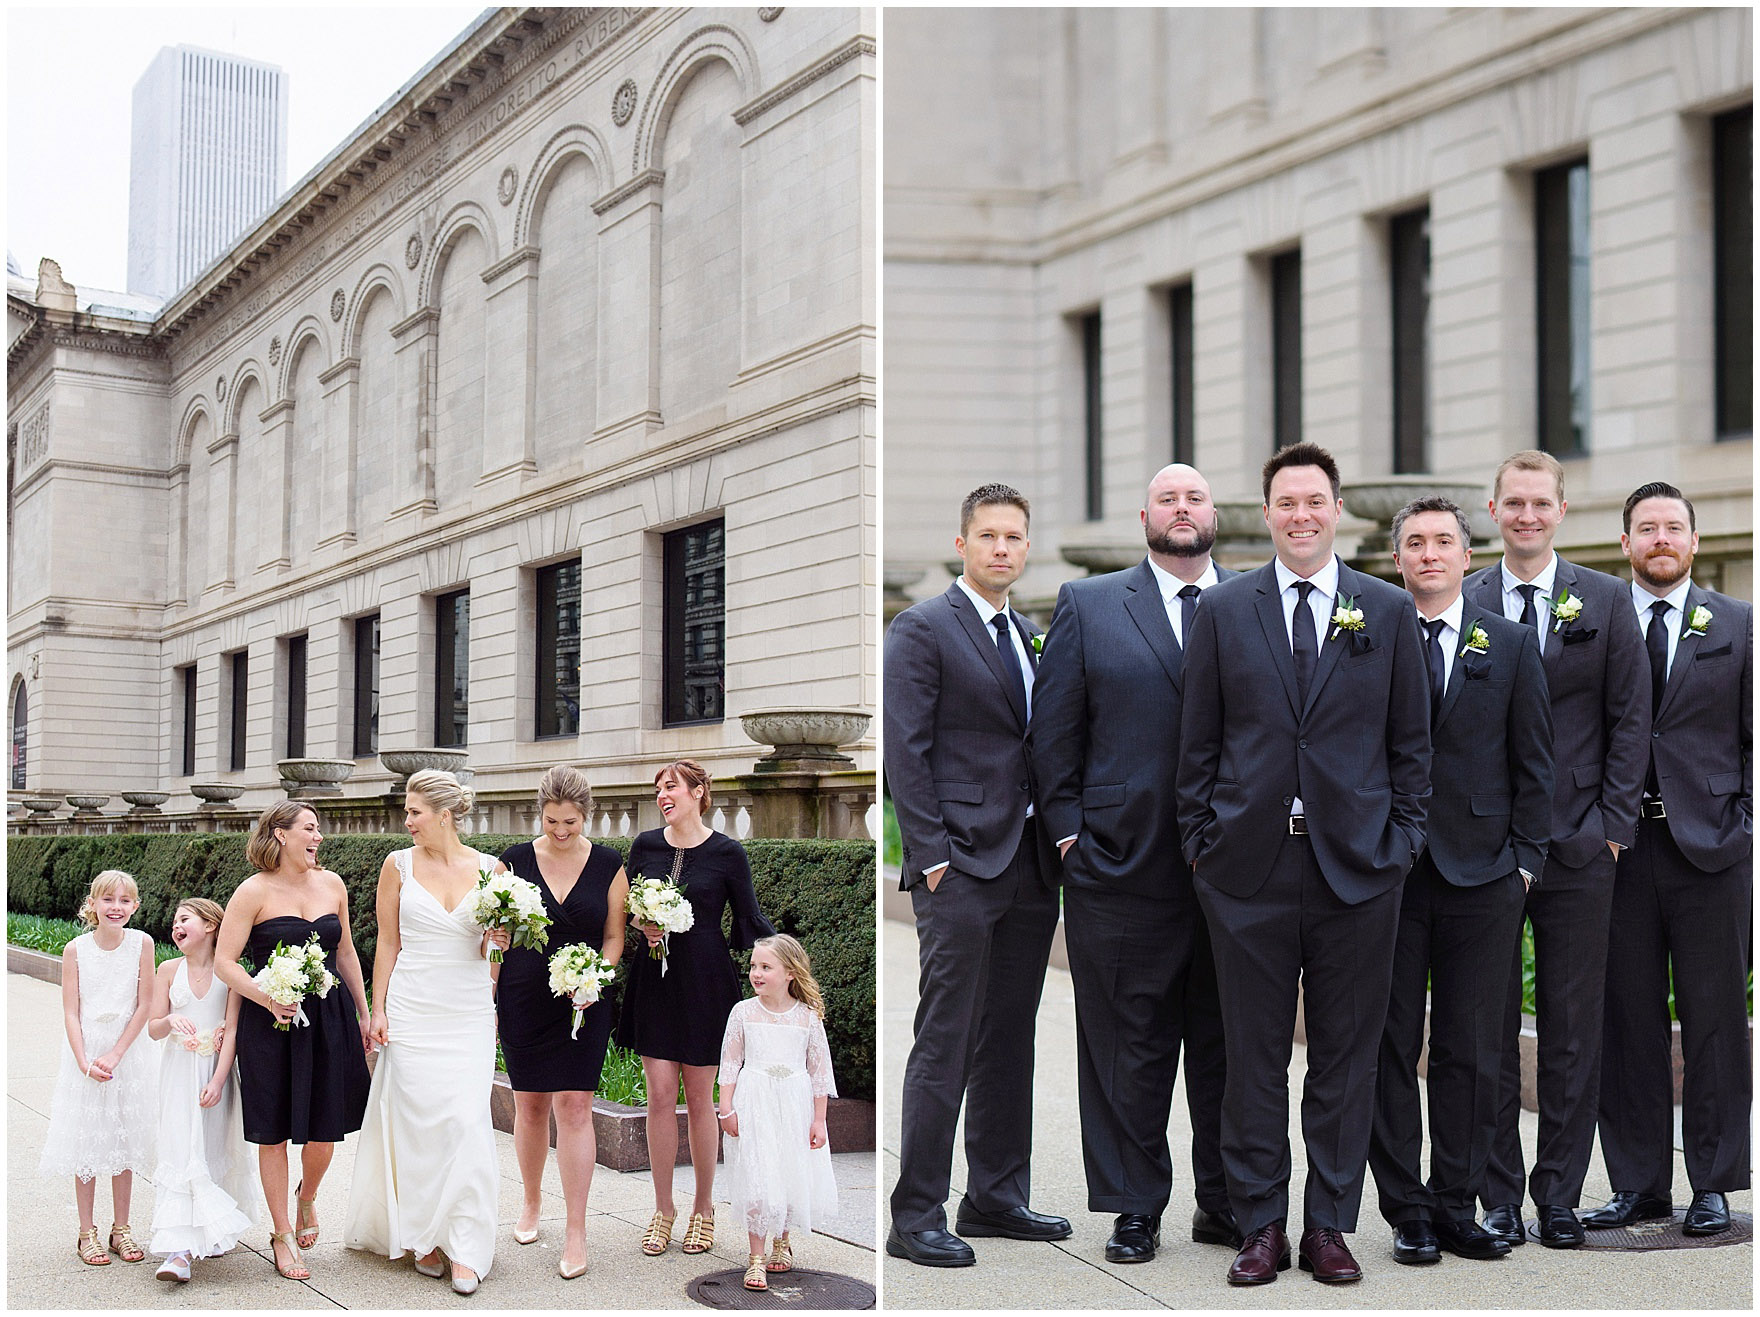 Bridesmaids and groomsmen pose with a bride and groom in front of the Art Institute of Chicago prior to an Ovation Chicago wedding.